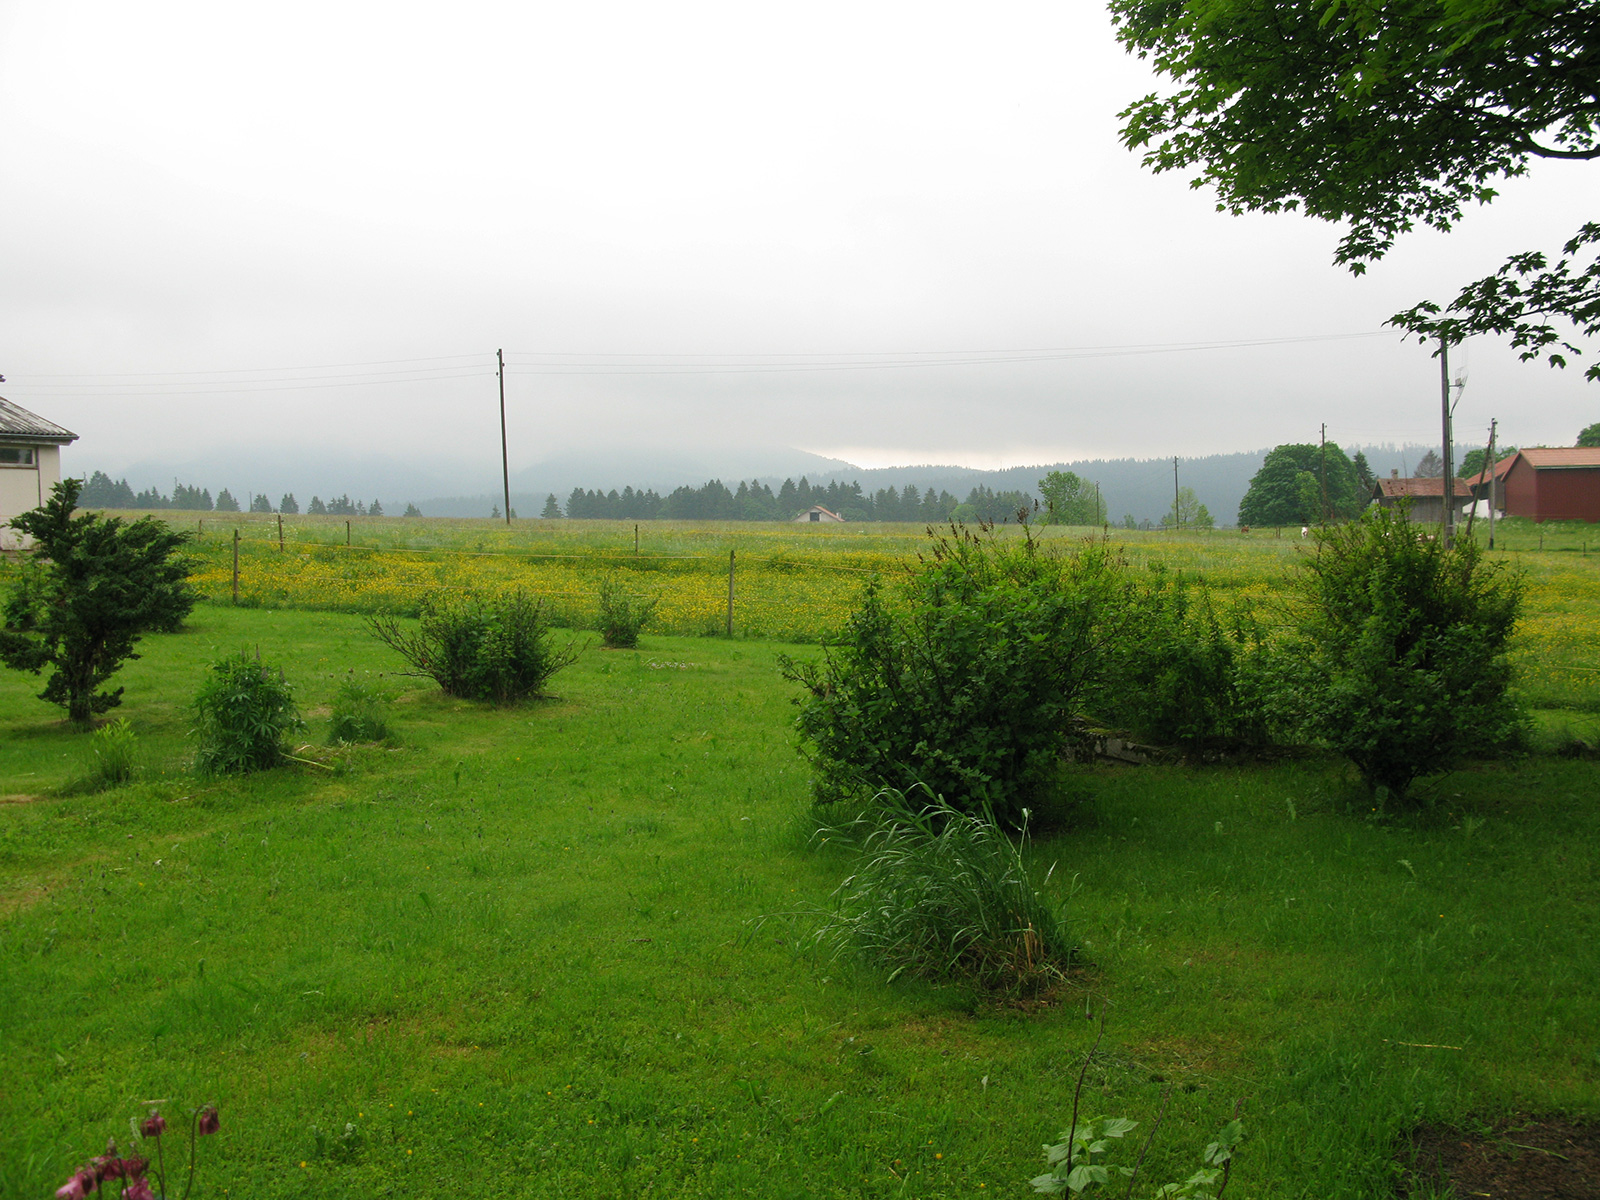 View from a mllk producer's farmhouse